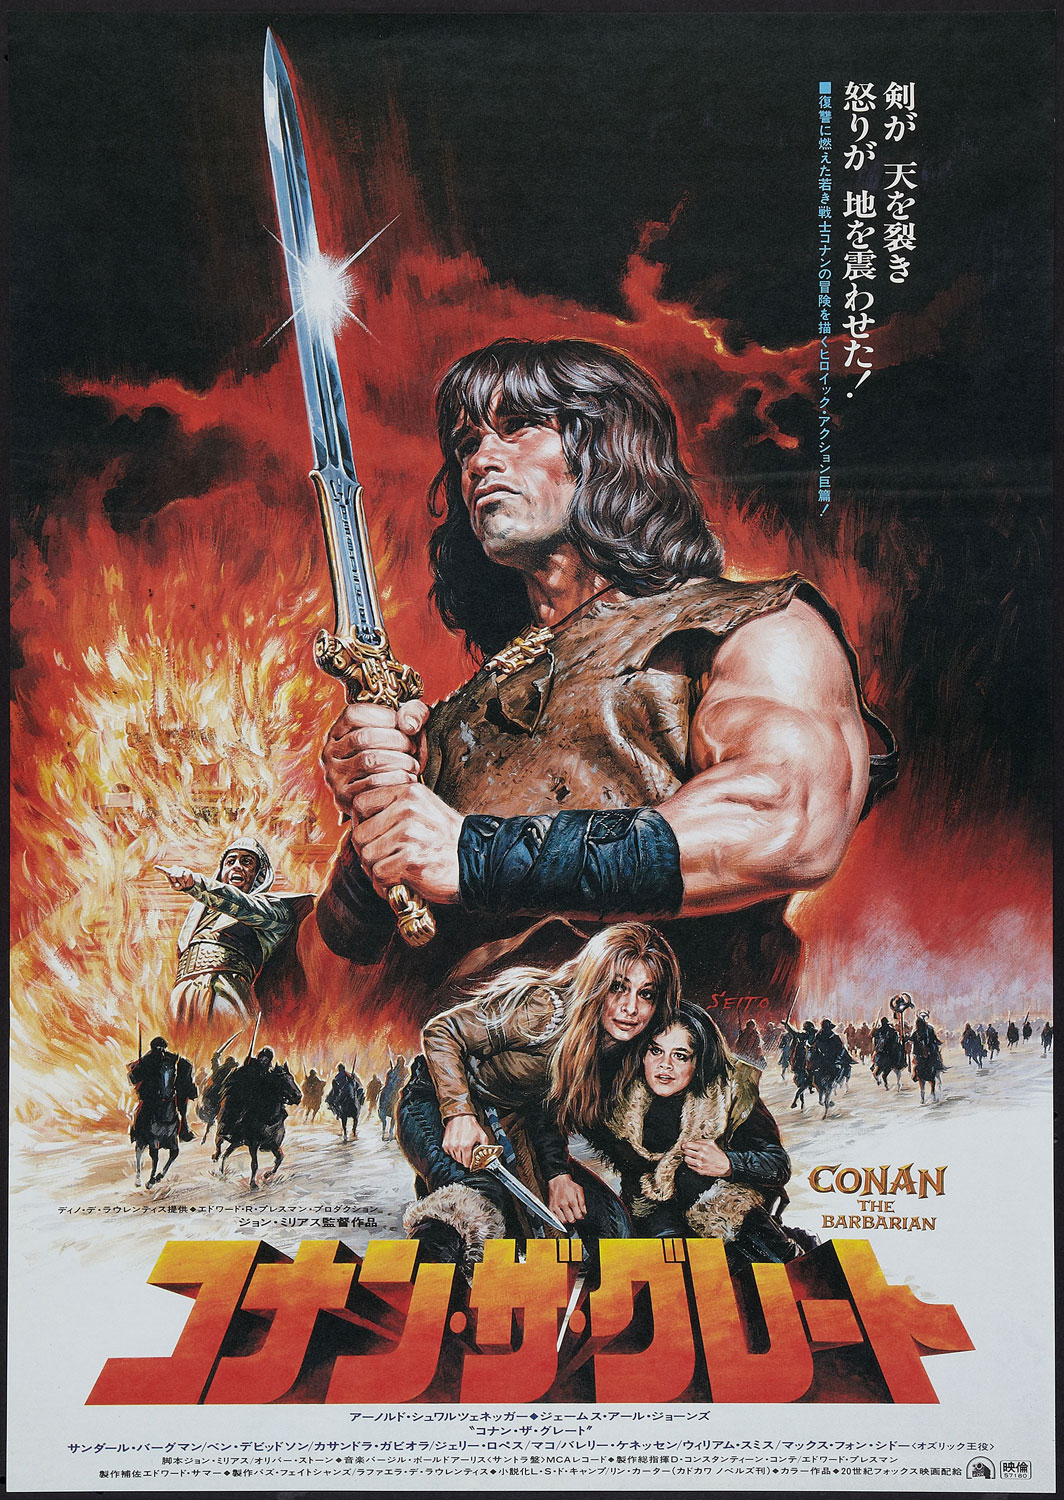 conan_the_barbarian_poster_1982_02.jpg